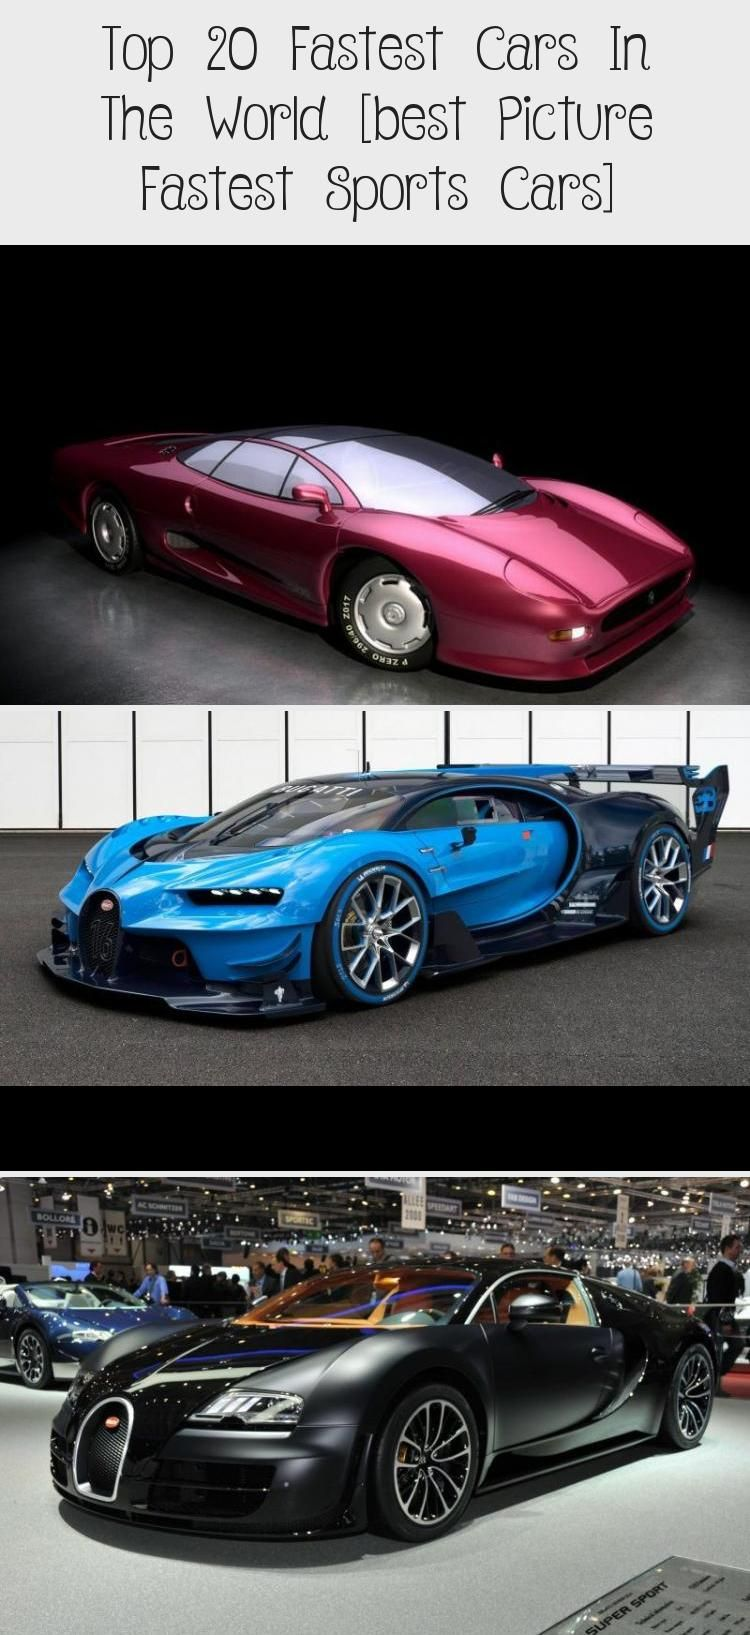 Top 20 Fastest Cars In The World Best Picture Fastest Sports Cars Fast Sports Cars Sports Cars Car In The World